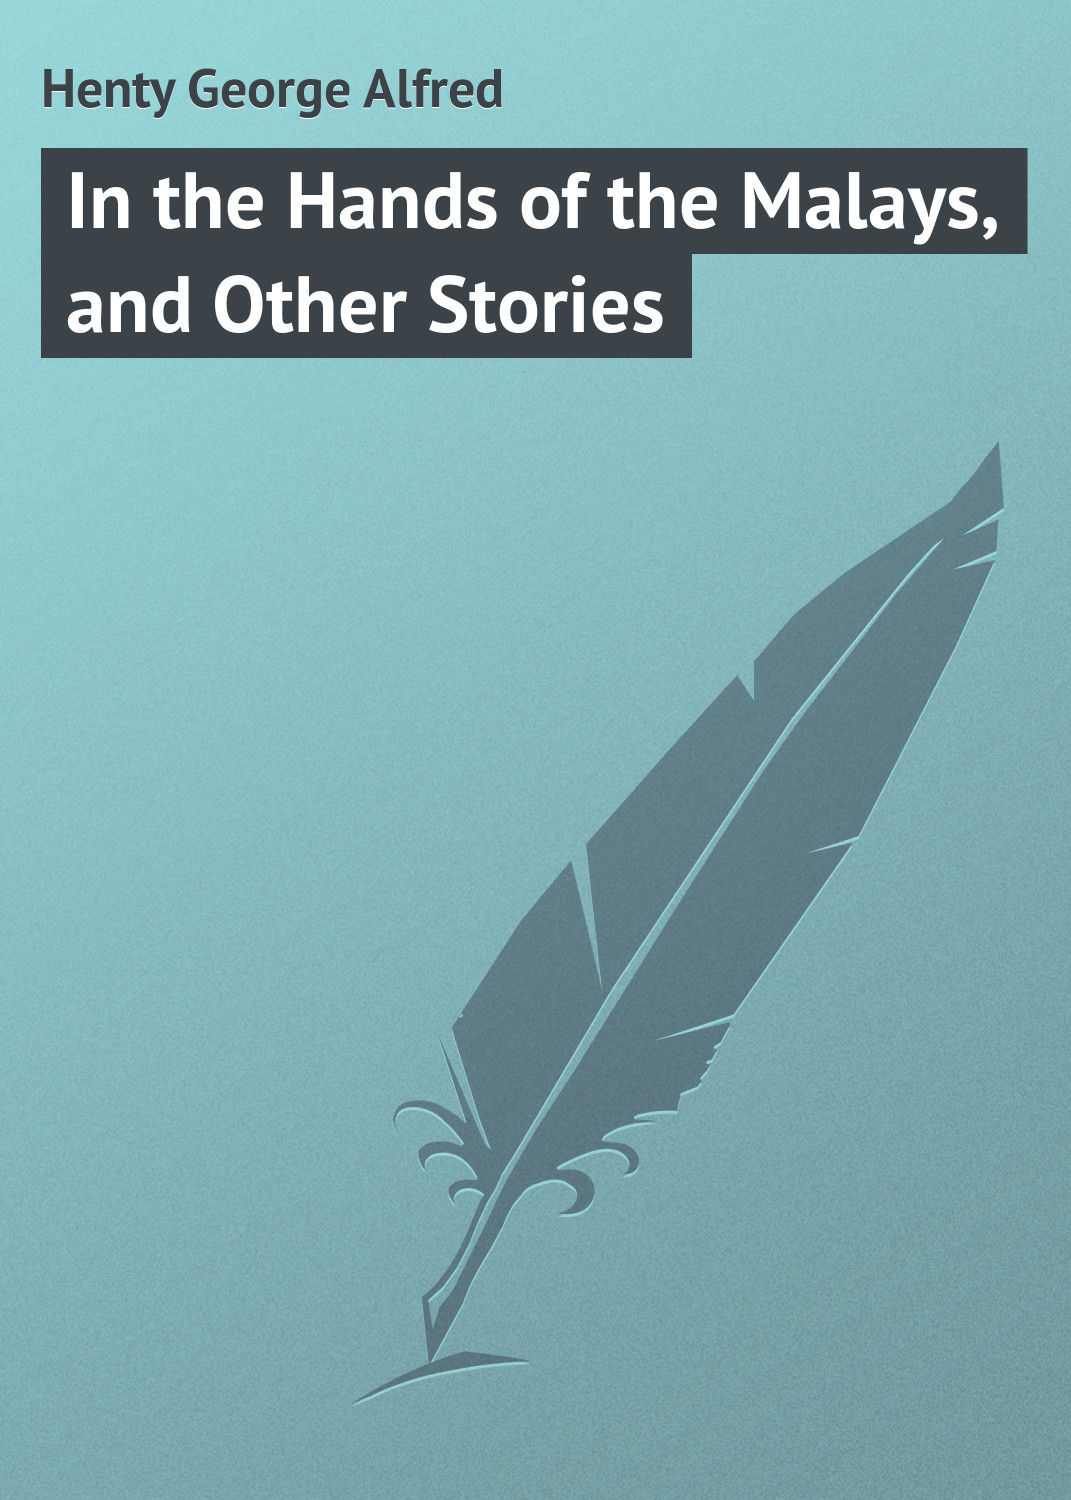 Henty George Alfred In the Hands of the Malays, and Other Stories monsters and other stories